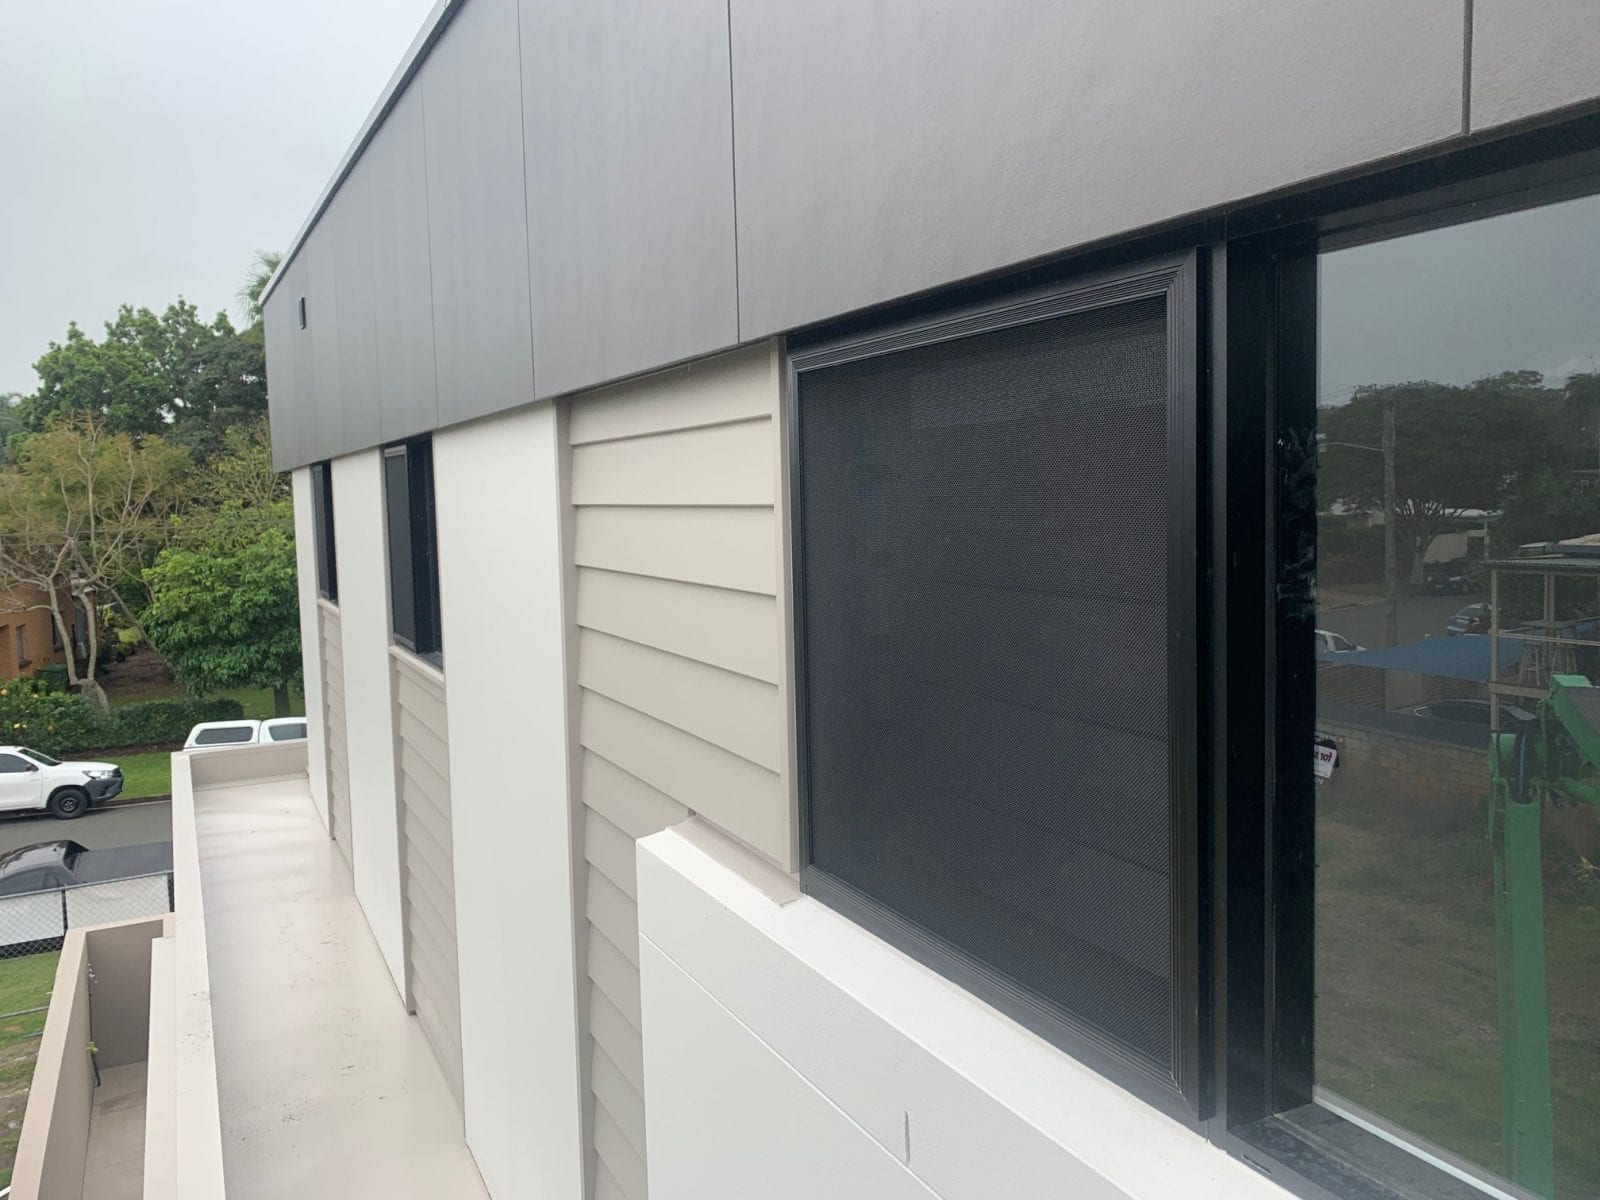 fire system windows with guard